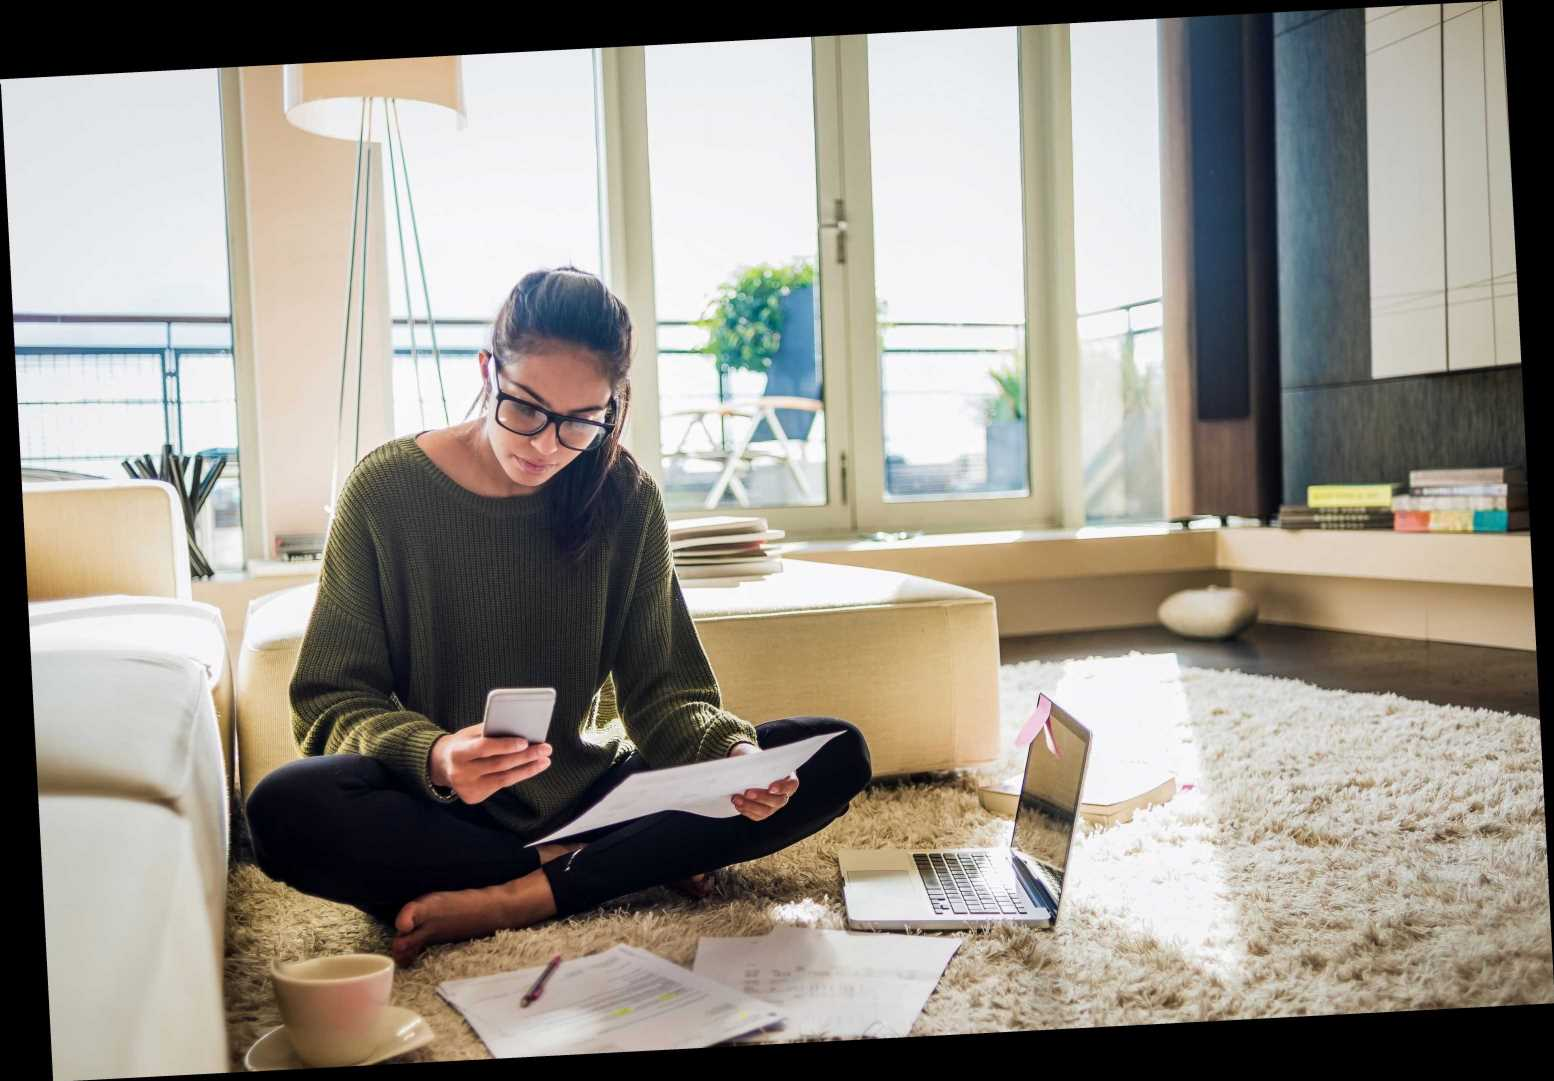 Last chance to claim up to £125 in tax relief for working from home in the pandemic – here's how